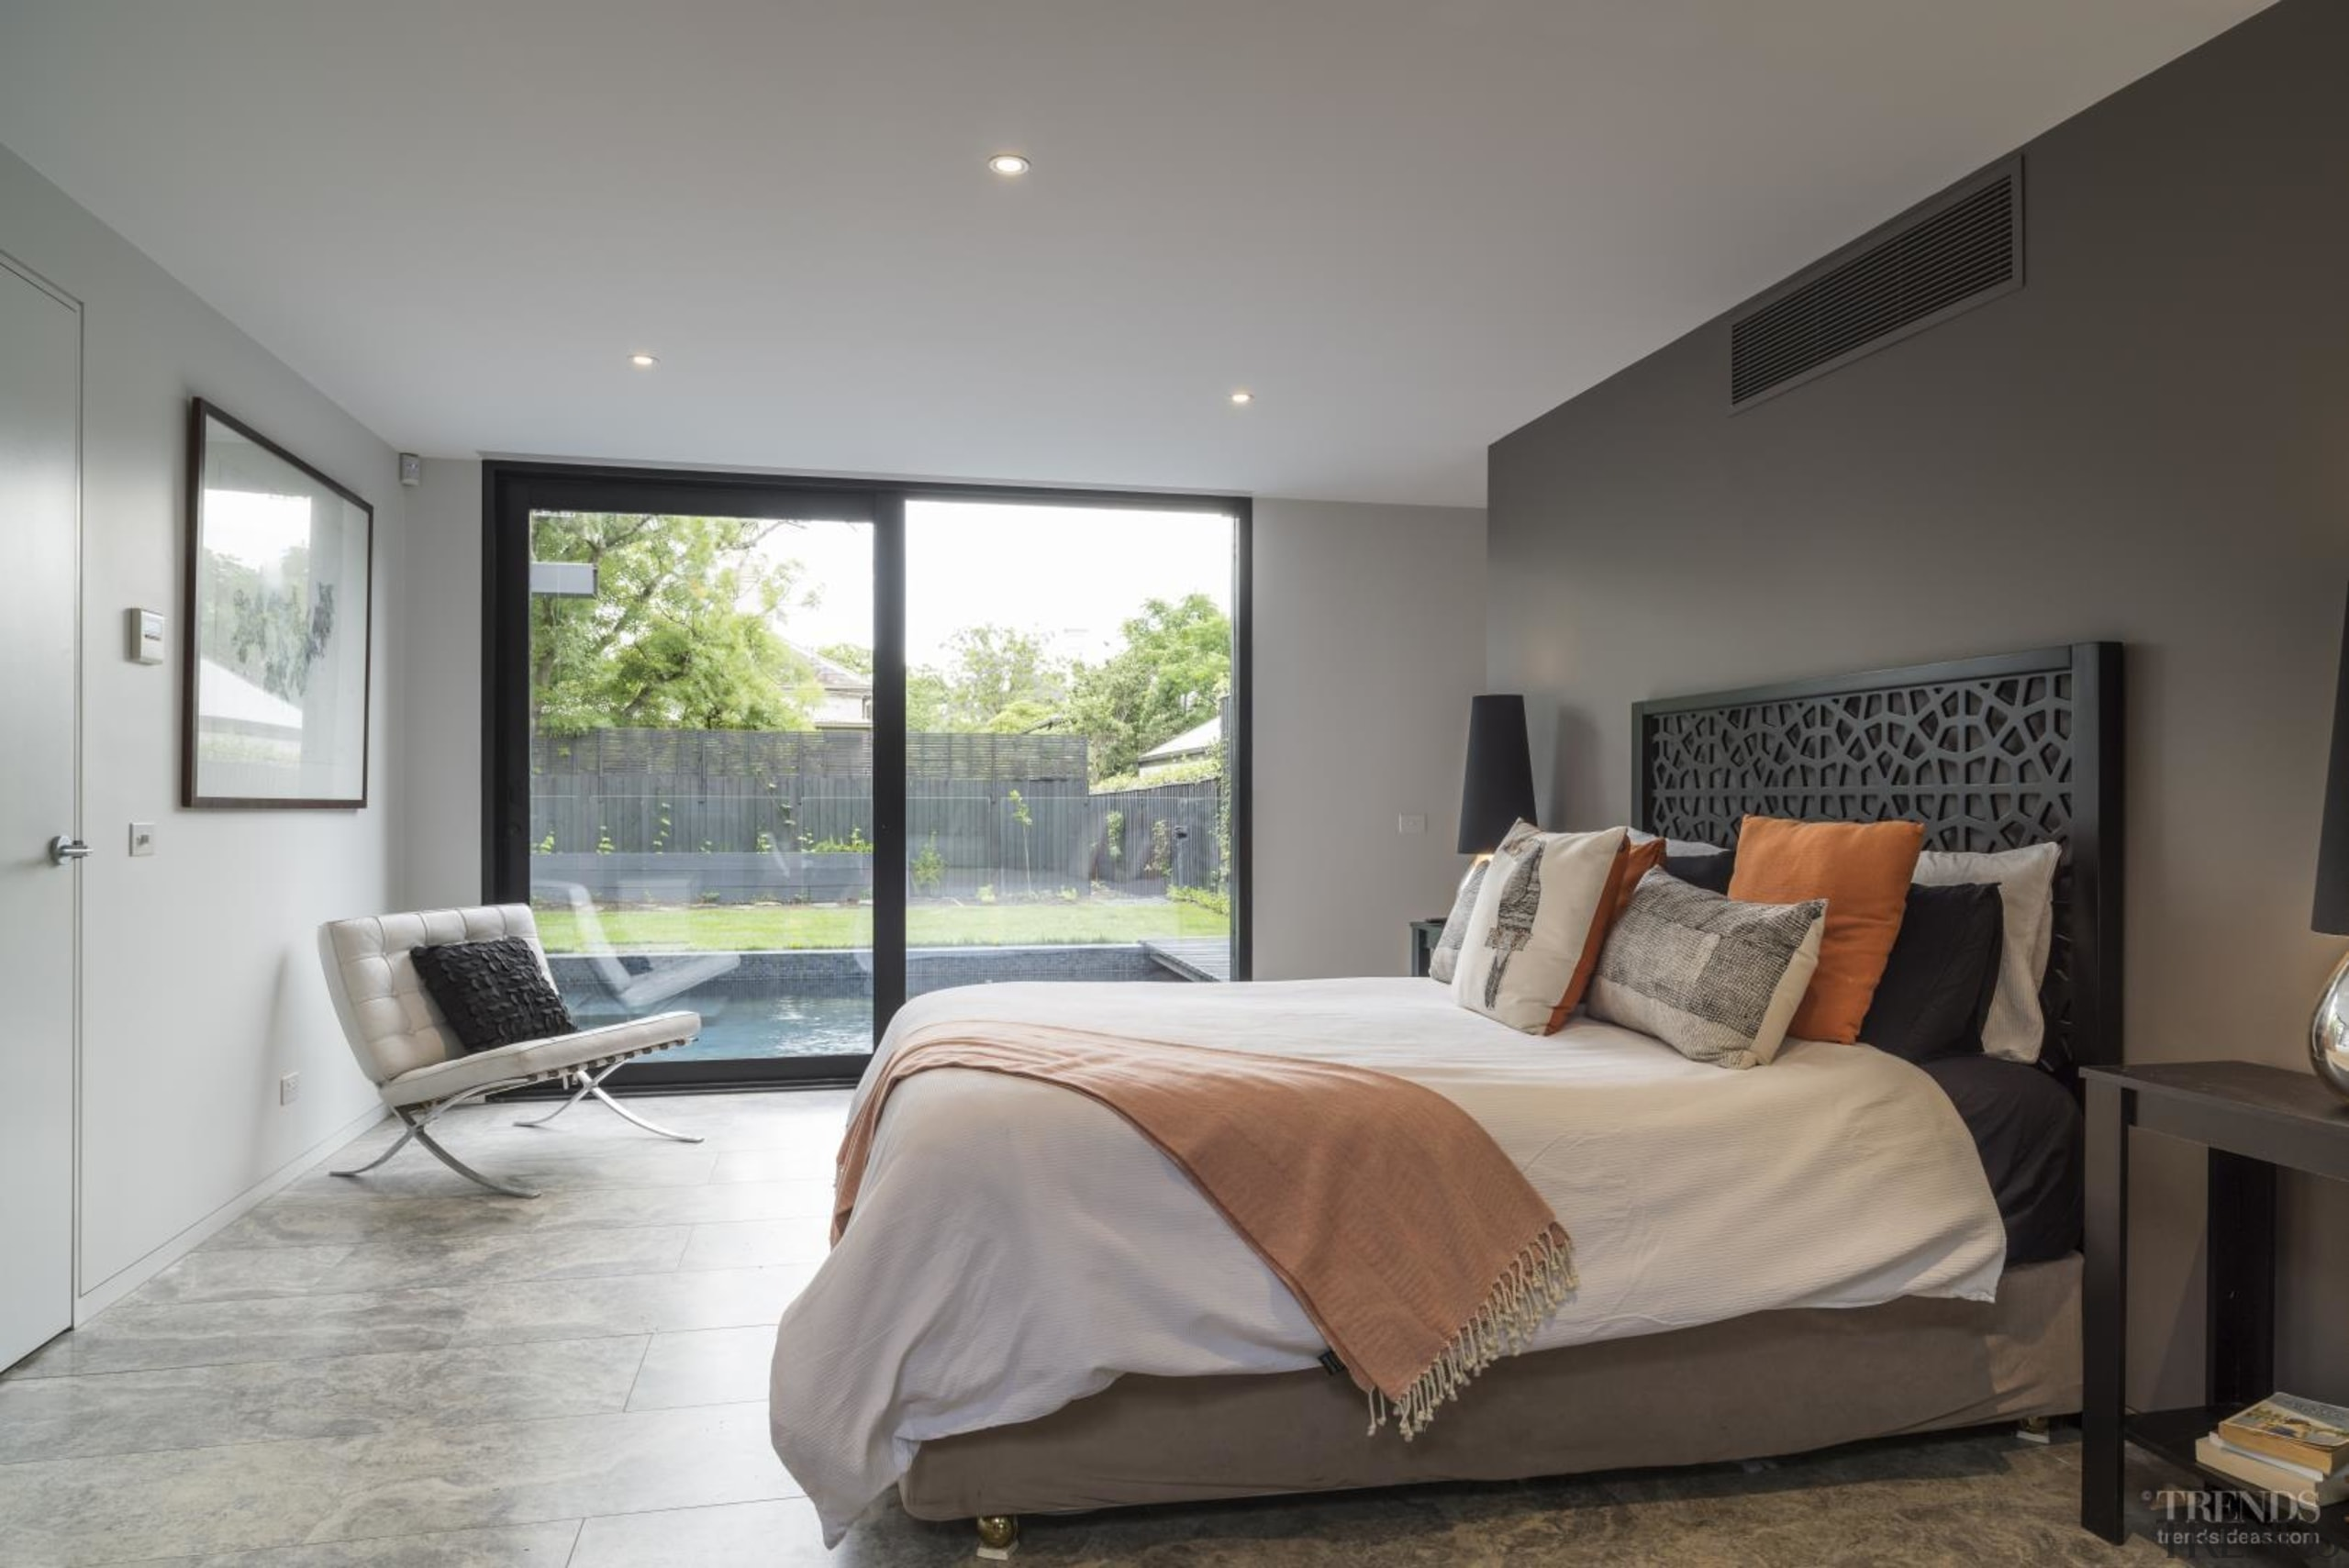 This master bedroom looks out to the home's bed frame, bedroom, ceiling, estate, floor, home, house, interior design, property, real estate, room, window, gray